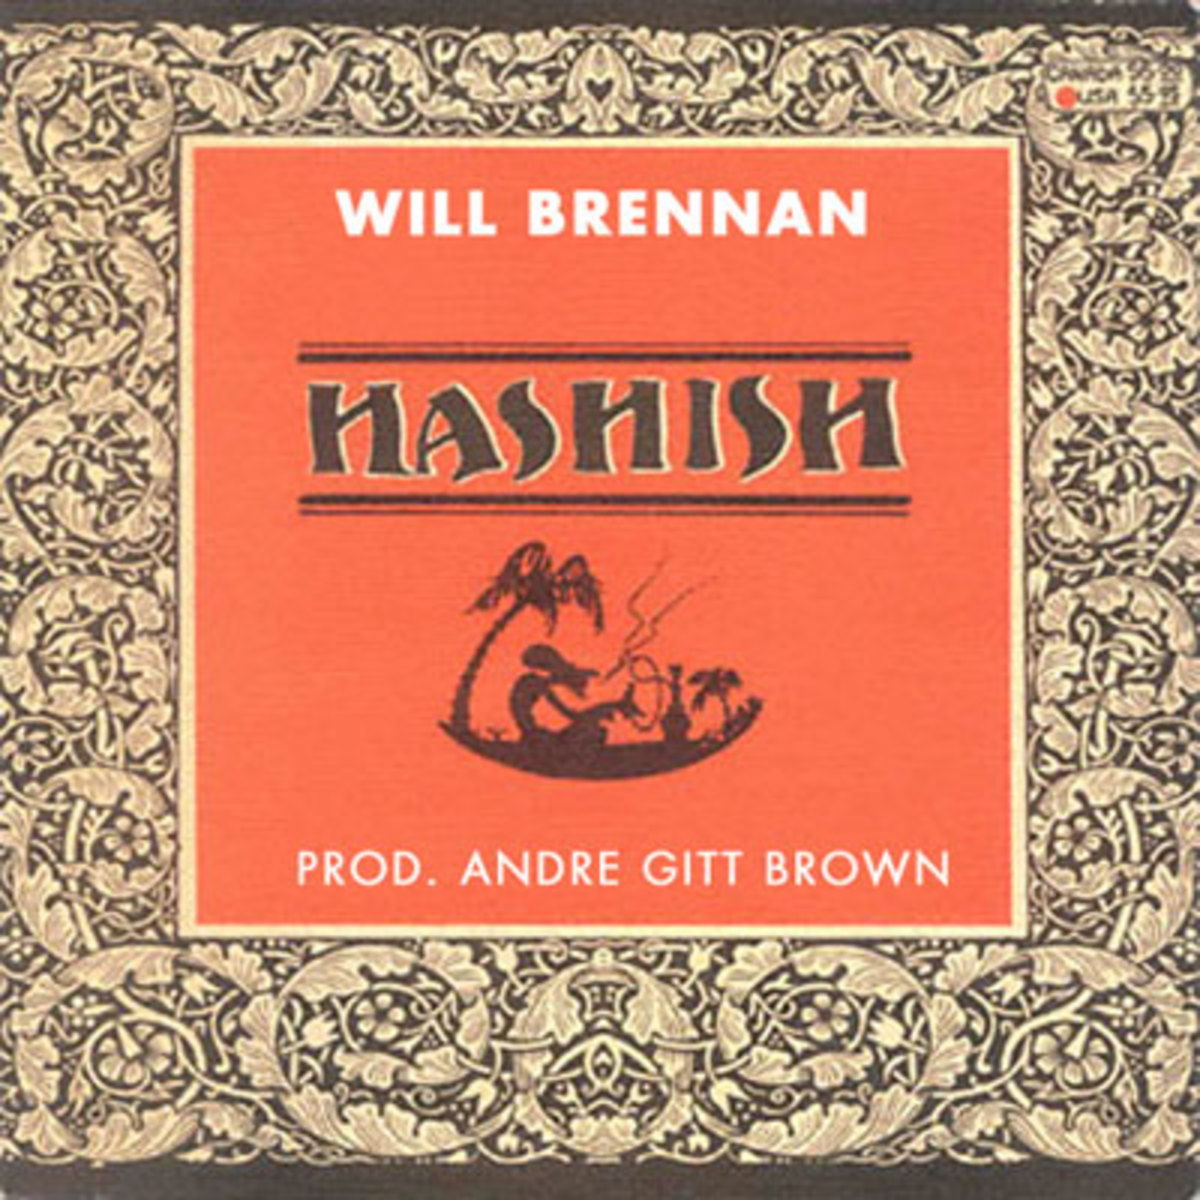 willbrennan-hashish.jpg